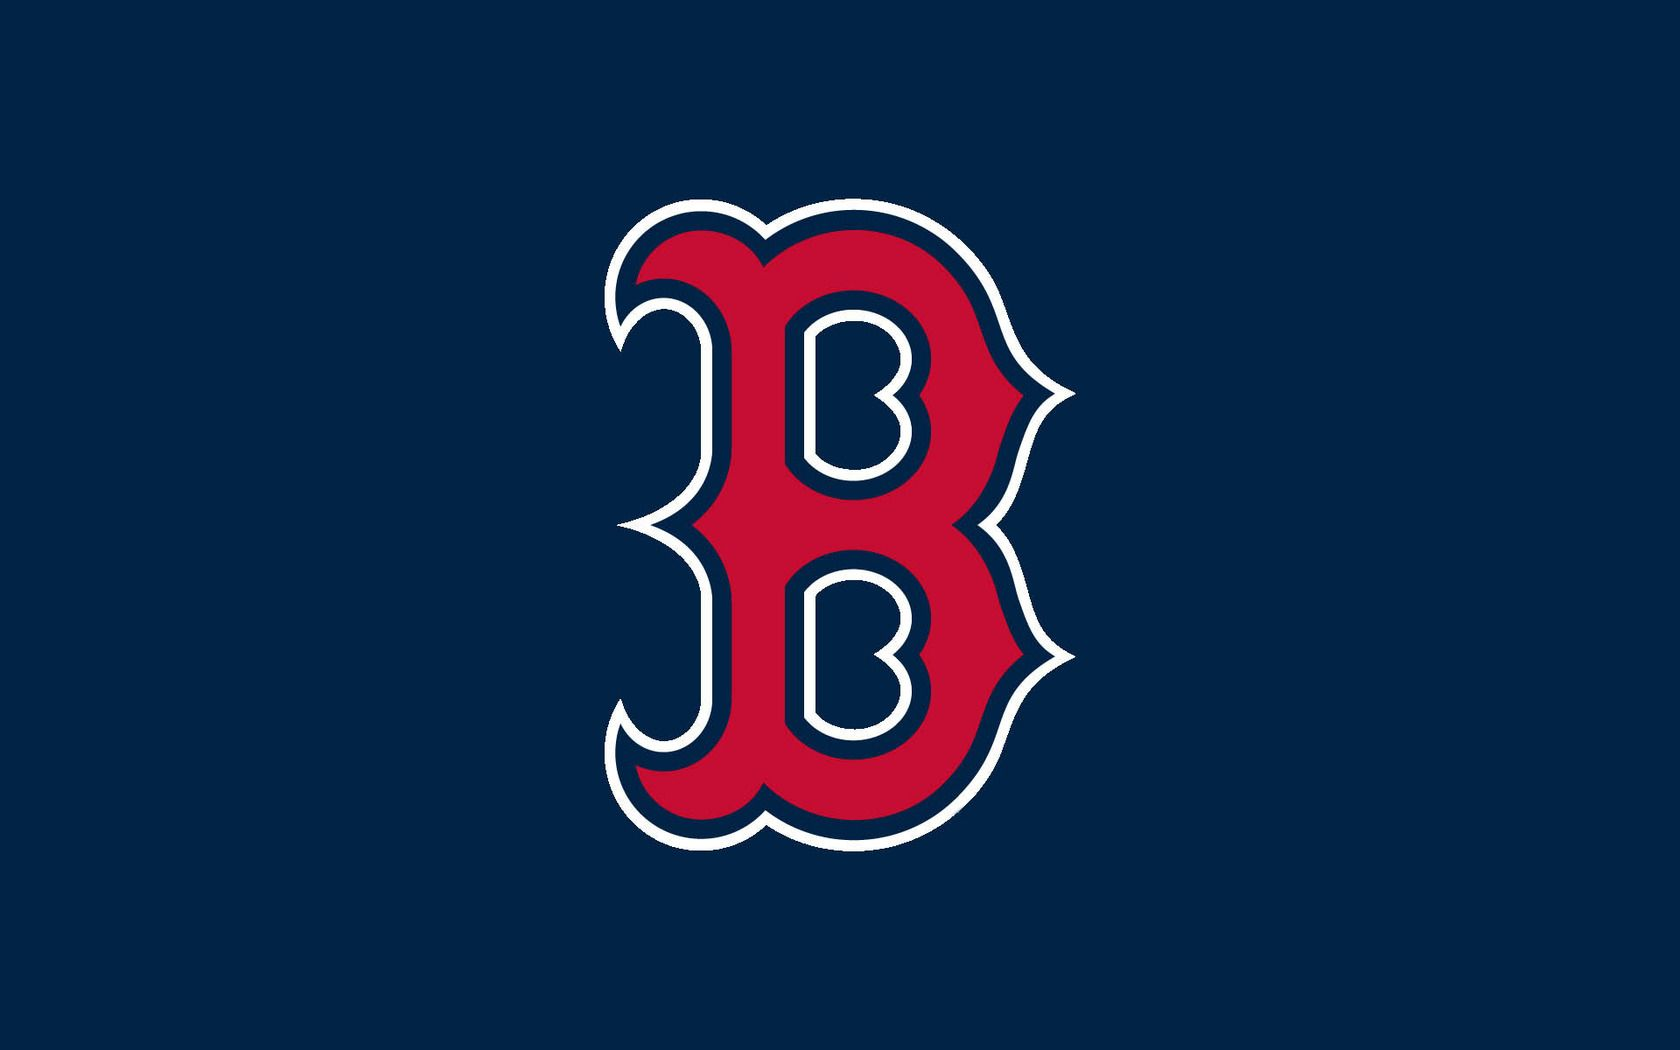 Boston Red Sox Cool Wallpaper Hd Imashon Com Red Sox Logo Boston Red Sox Logo Boston Red Sox Wallpaper